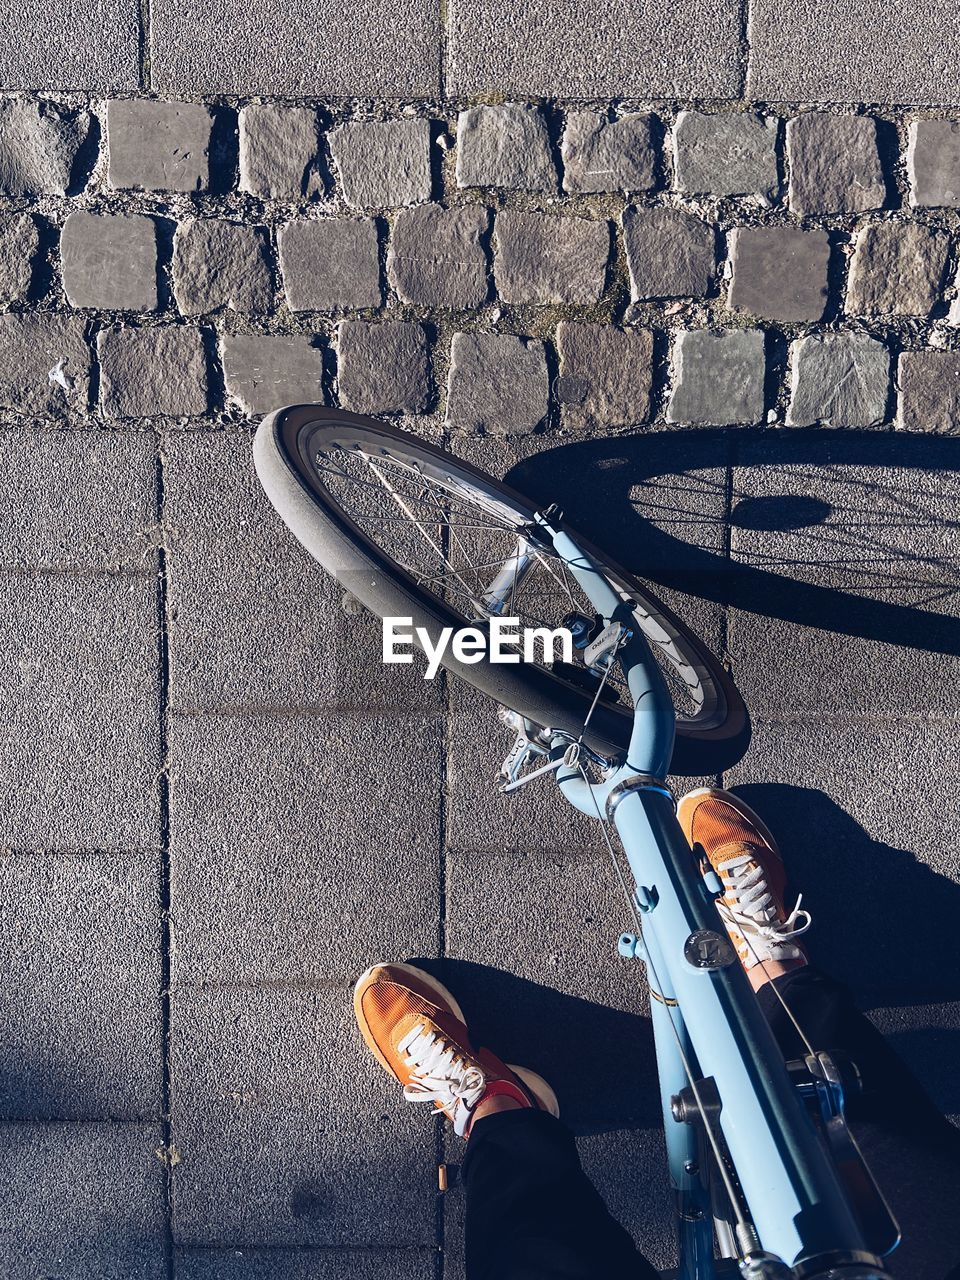 Low section of person with bicycle on street